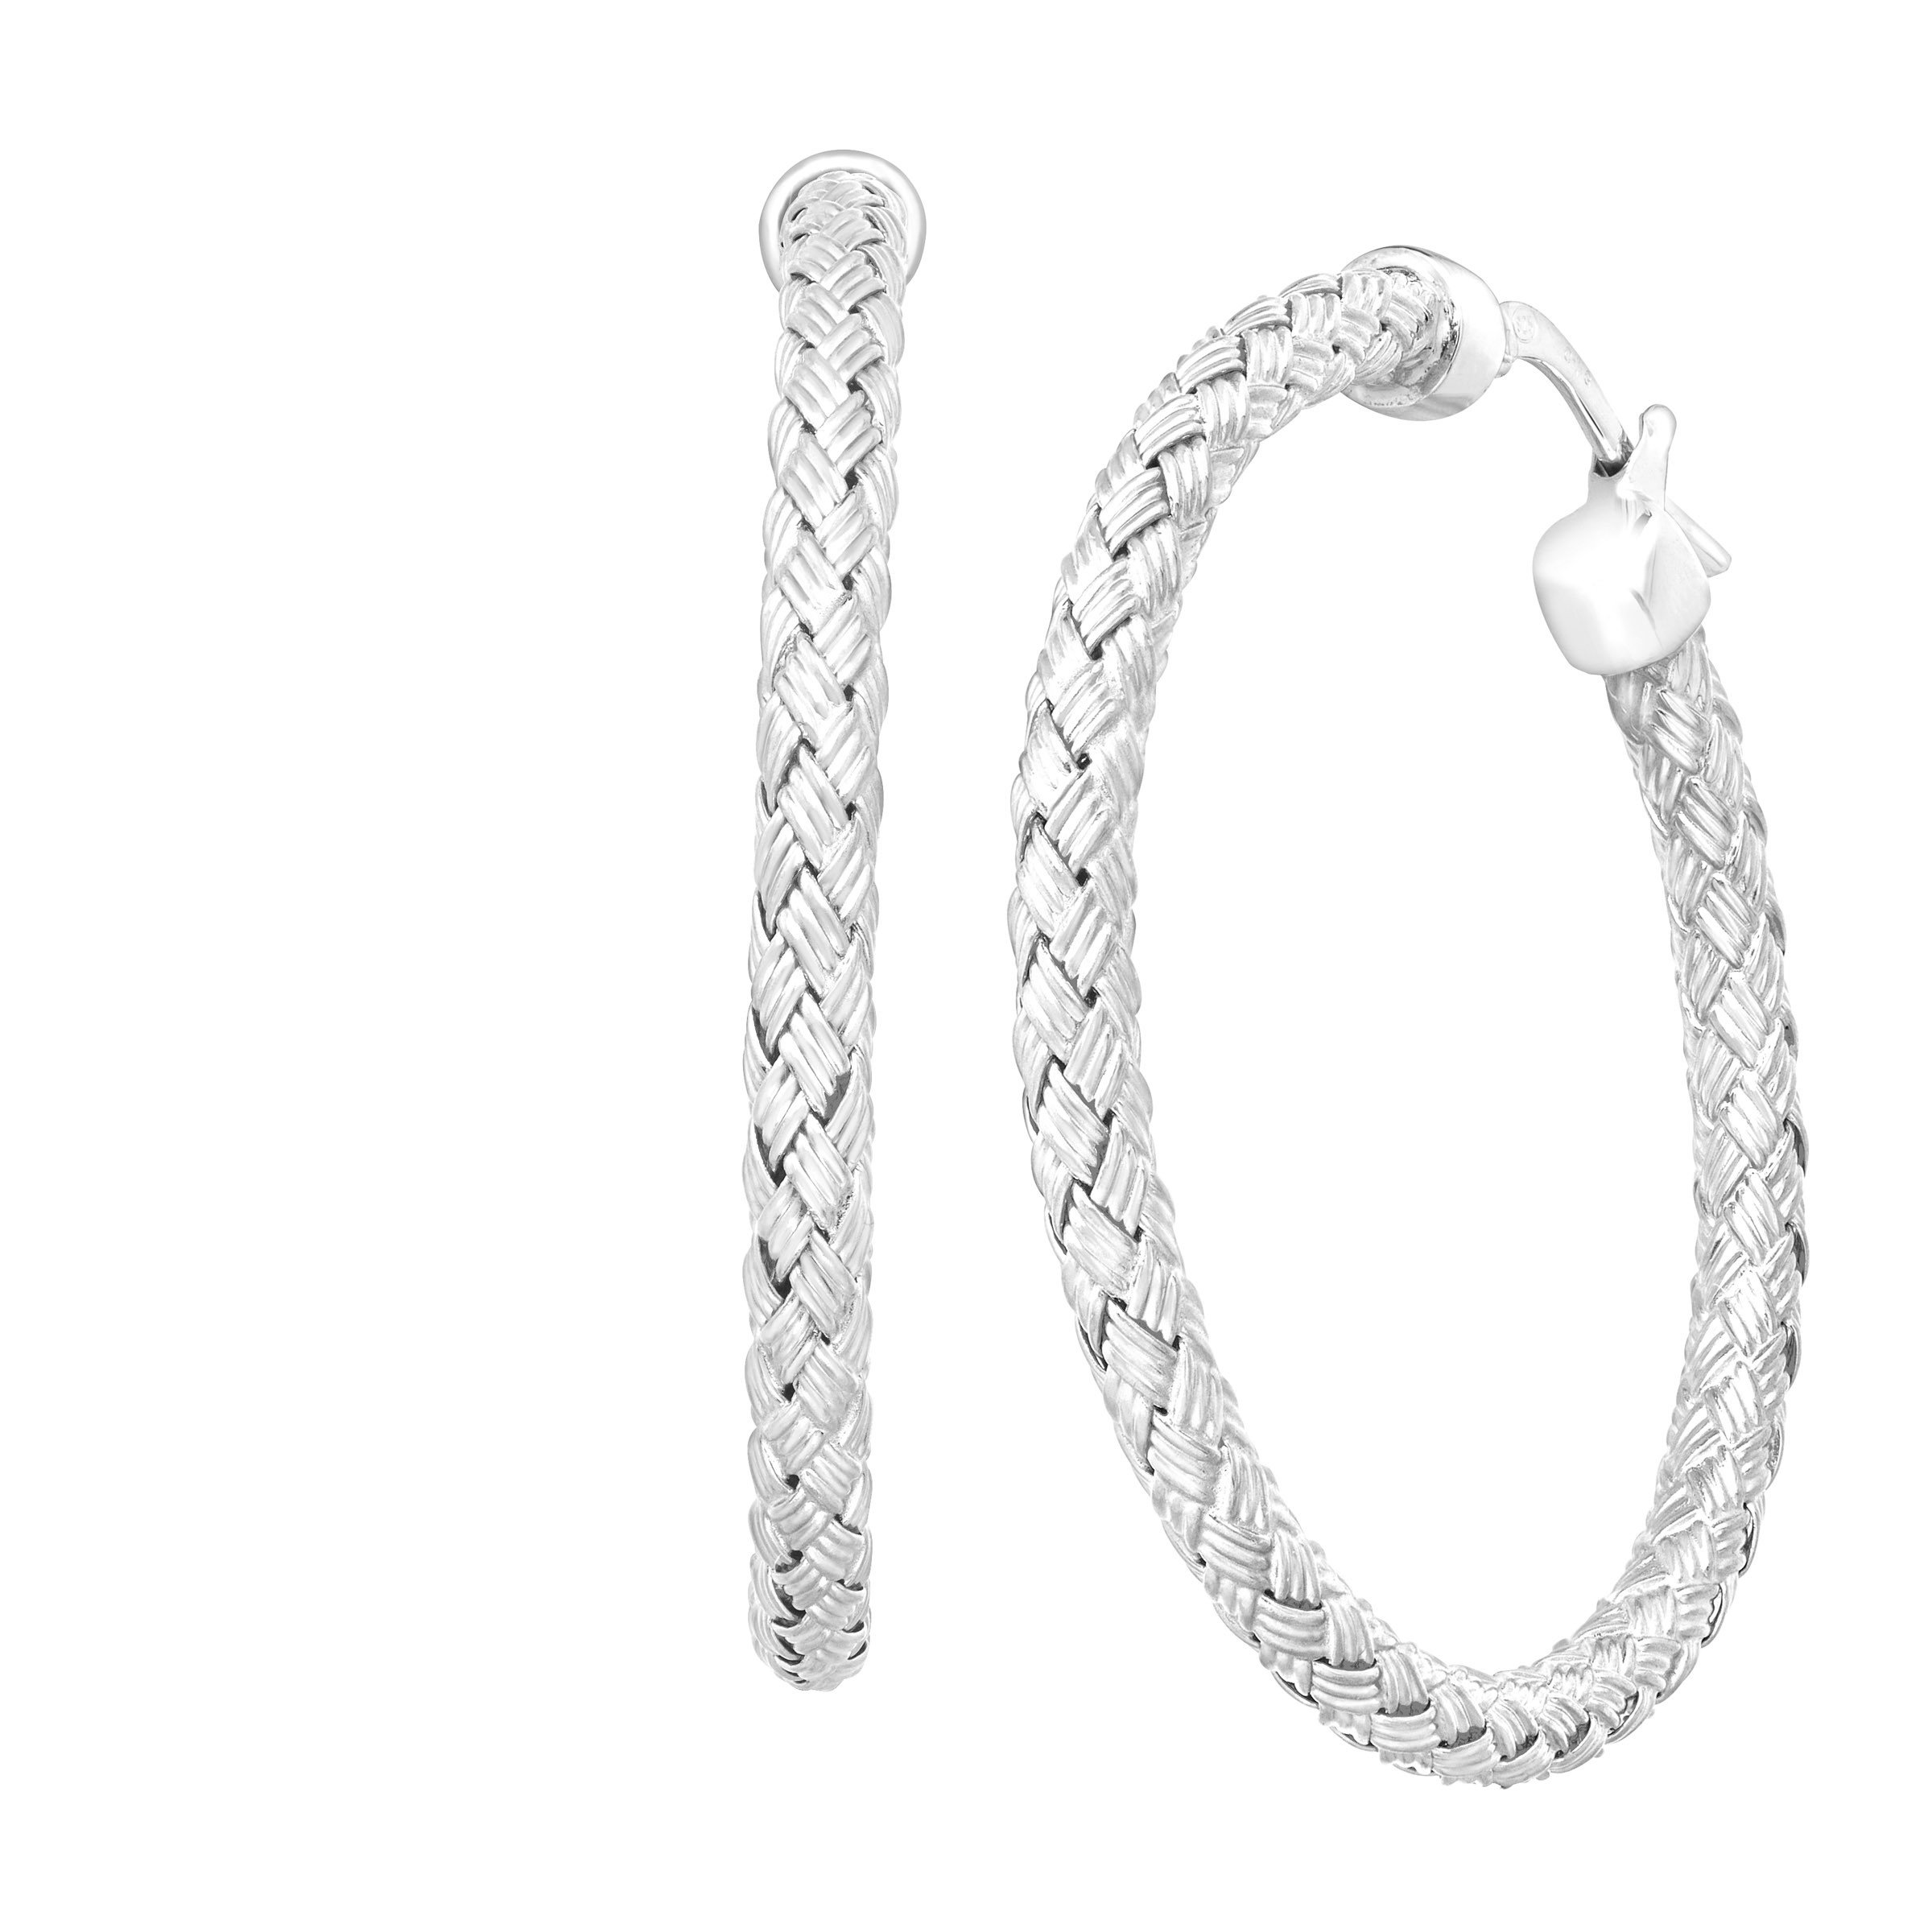 Charles Garnier Milan Woven Hoop Earrings in Sterling Silver